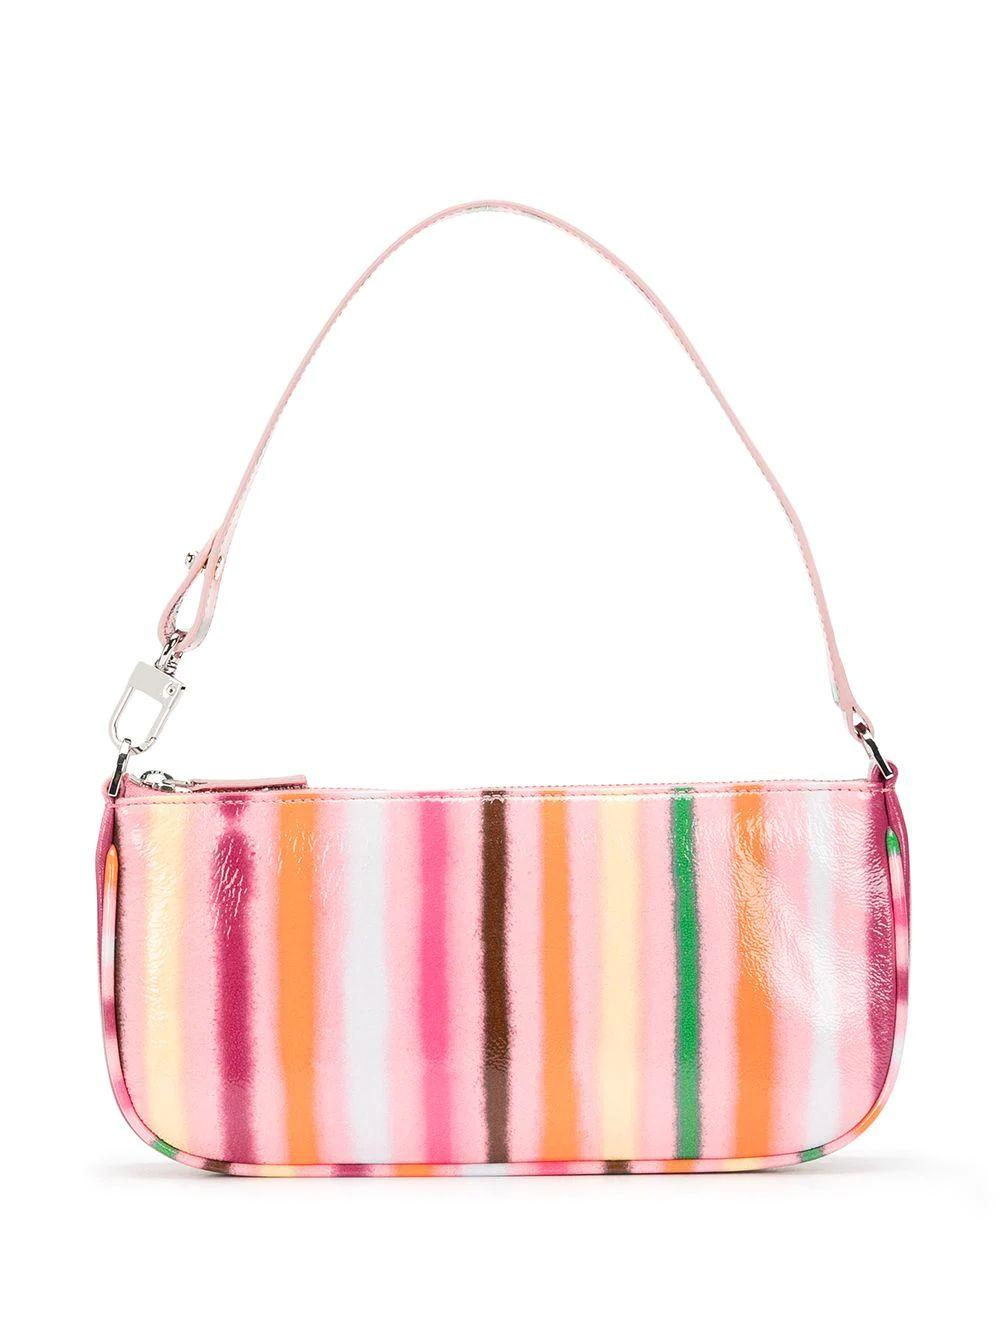 Rachel Striped Shoulder Bag